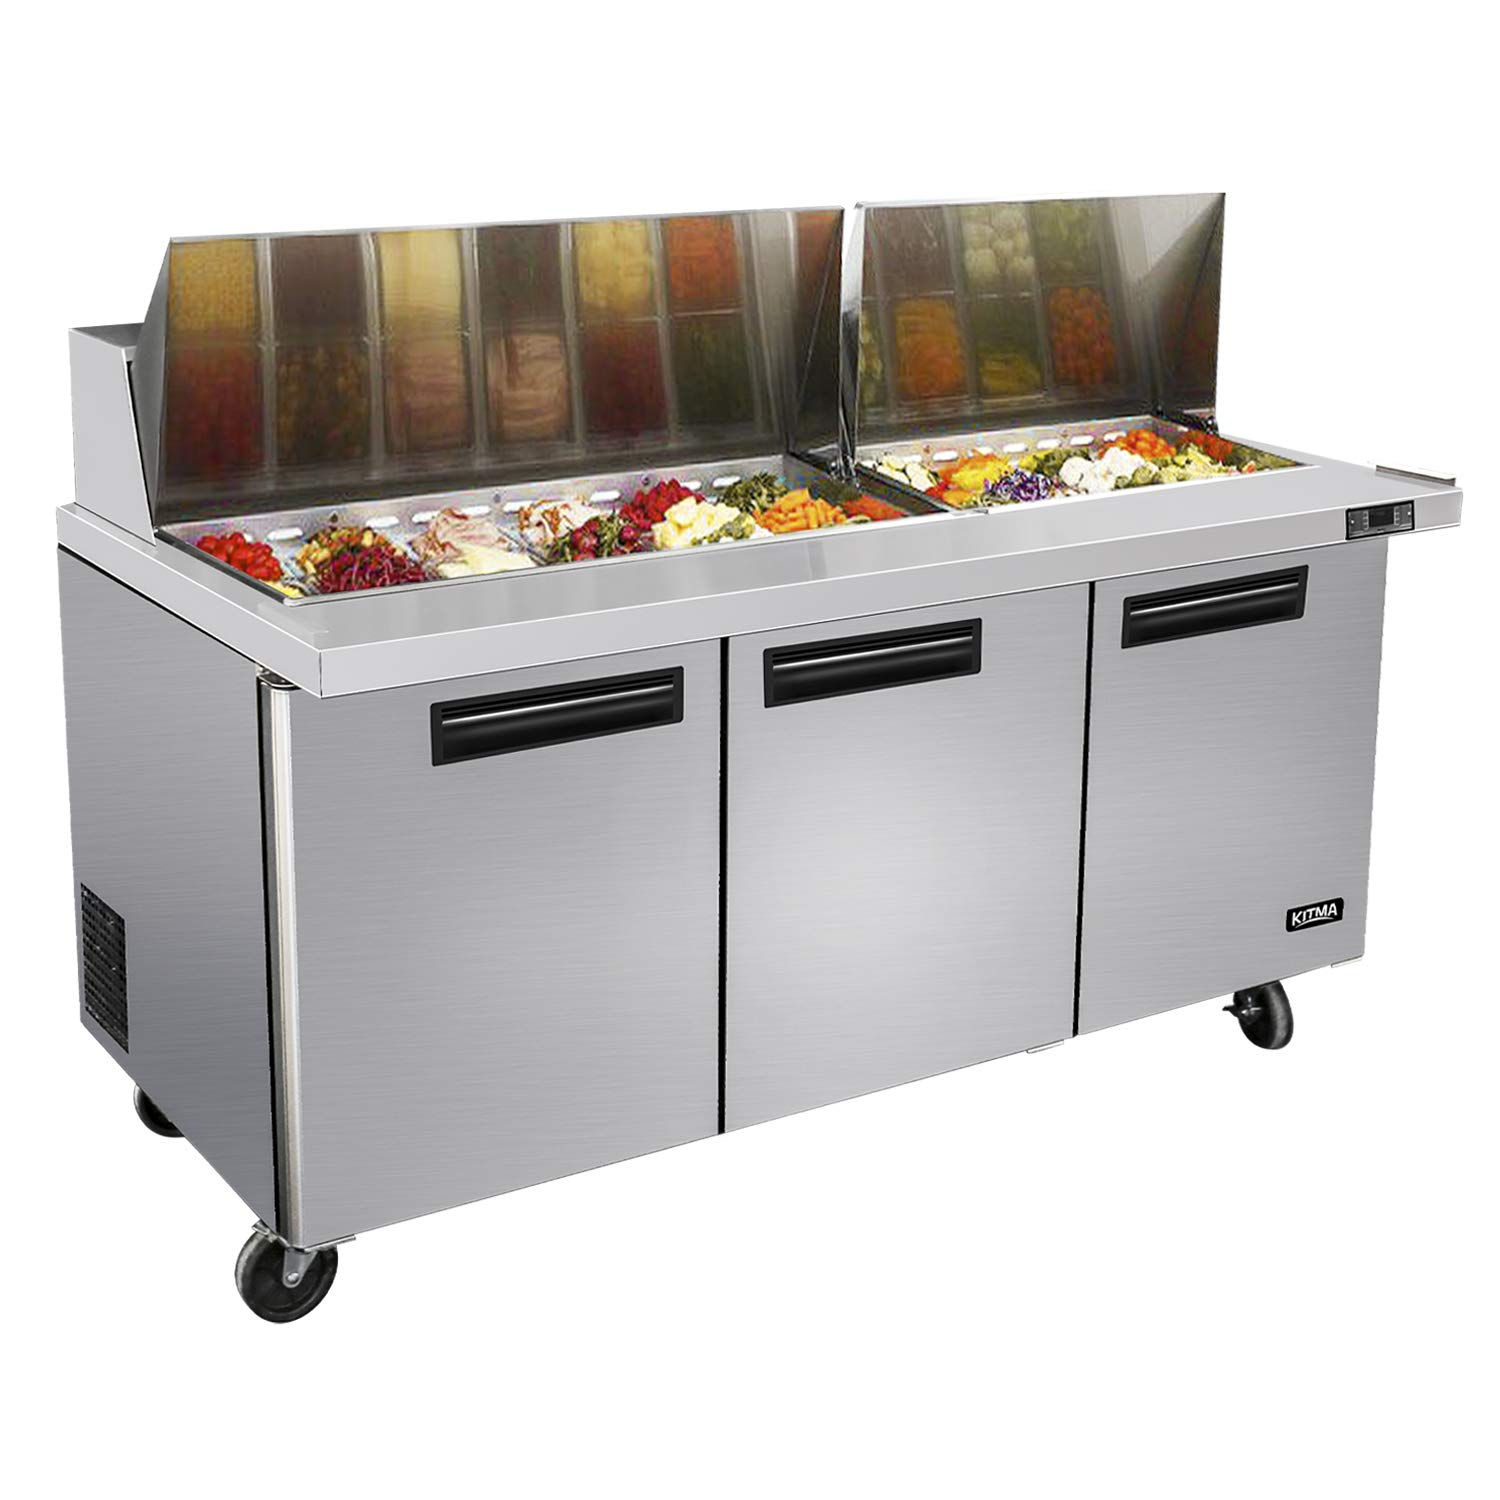 72 Inches 3 Door Mega Top Sandwich Prep Table Refrigerator - KITMA 22.6 Cu.Ft Refrigerated Salad Prep Station Table with Cutting Board and Pans, 33 °F - 38°F by KITMA